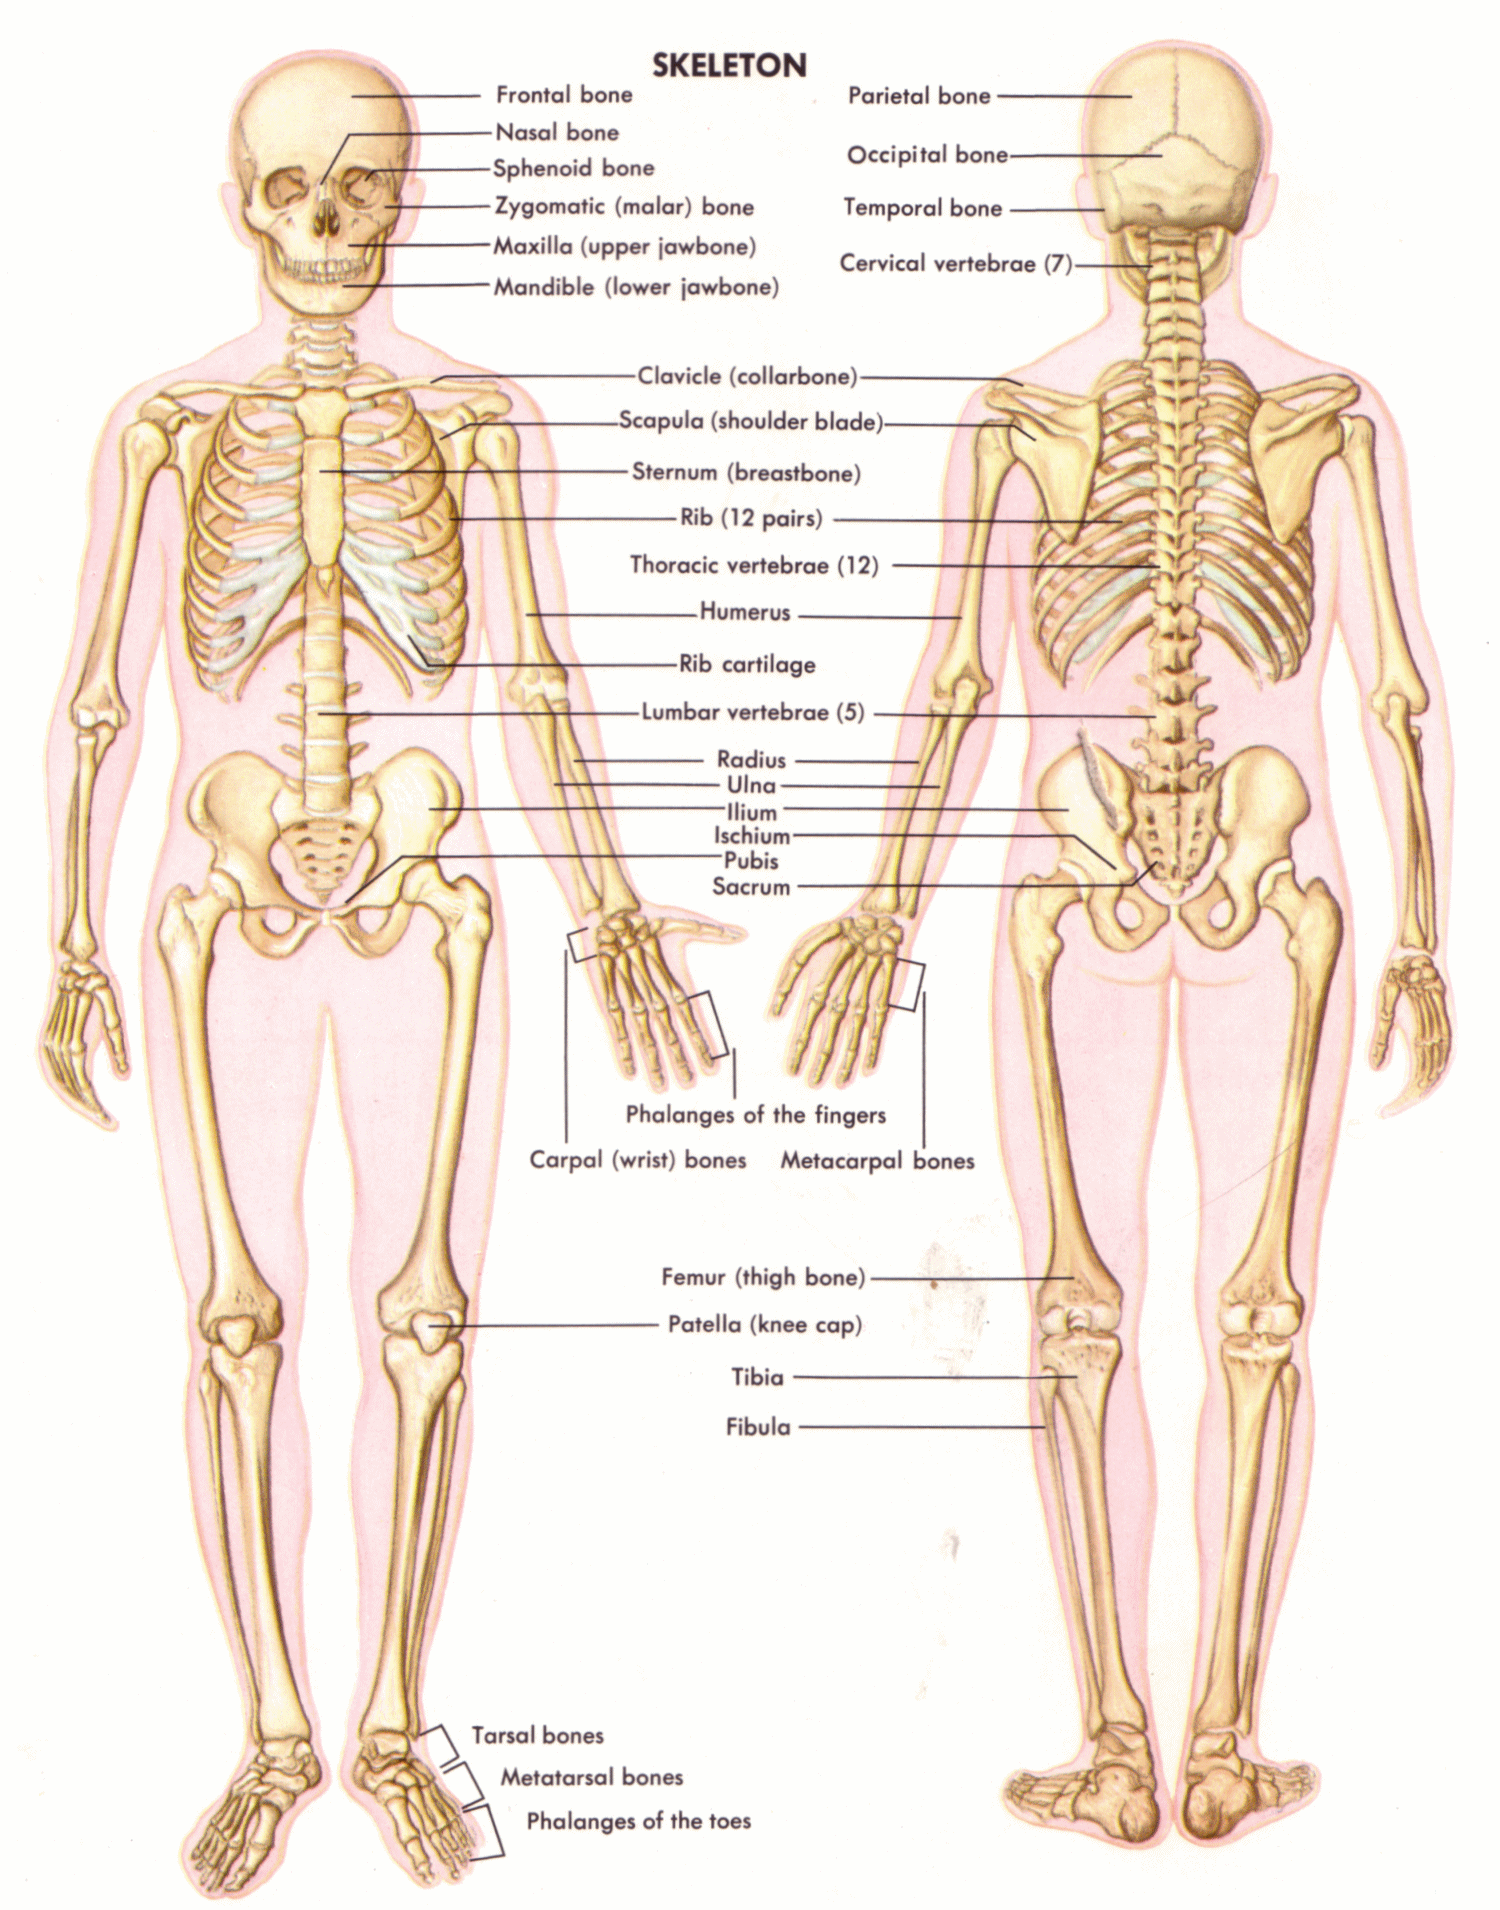 small resolution of muscles of the body diagram endoszkopcom endoszkopcom wiring muscles of the body diagram endoszkopcom endoszkopcom